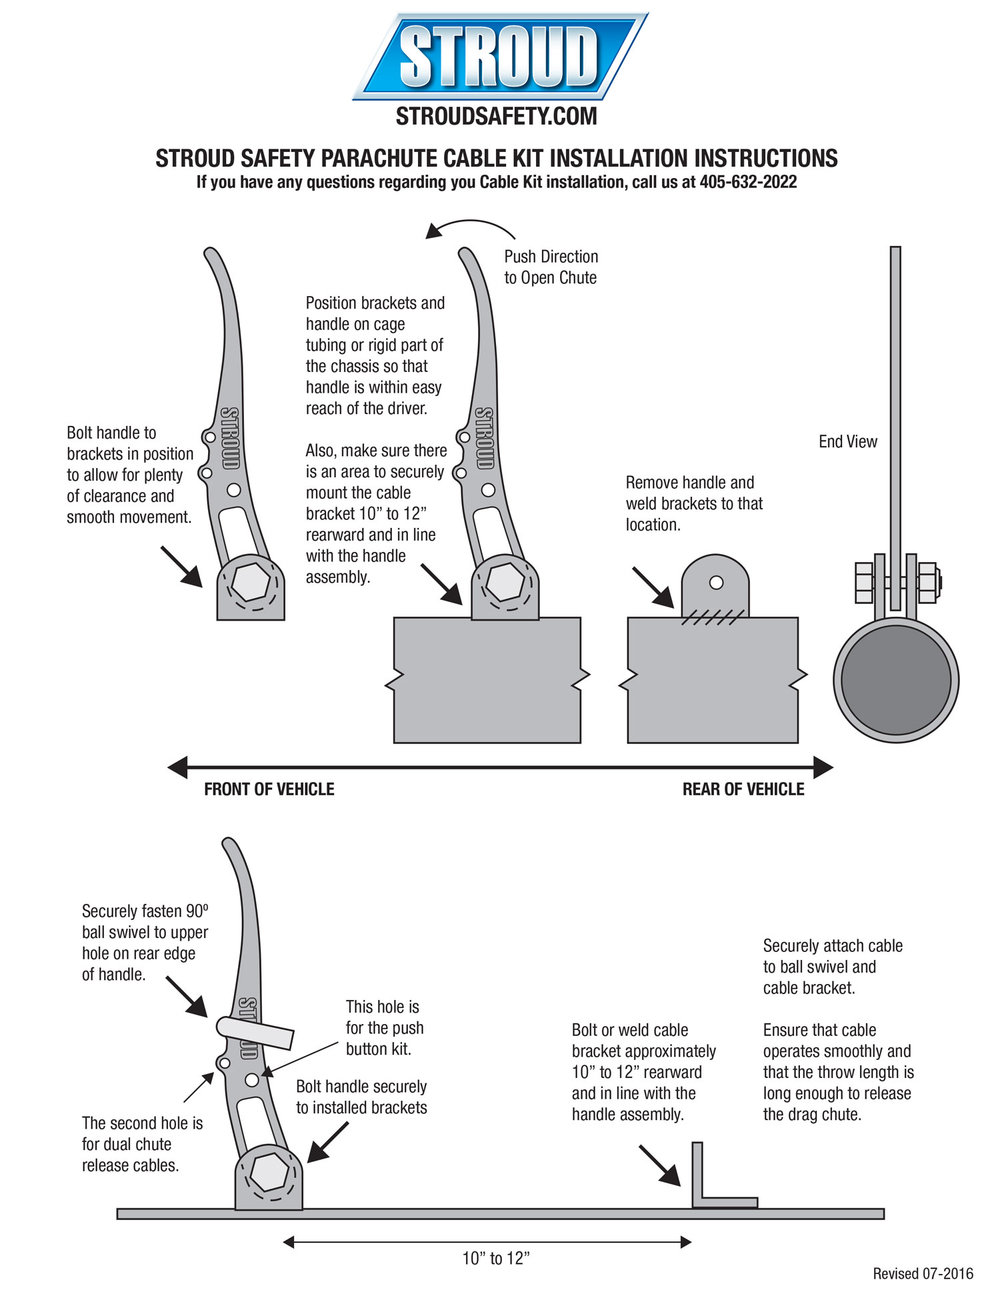 stroud safety parachute cable kit installation instructions use this chart  for the installation and operation of